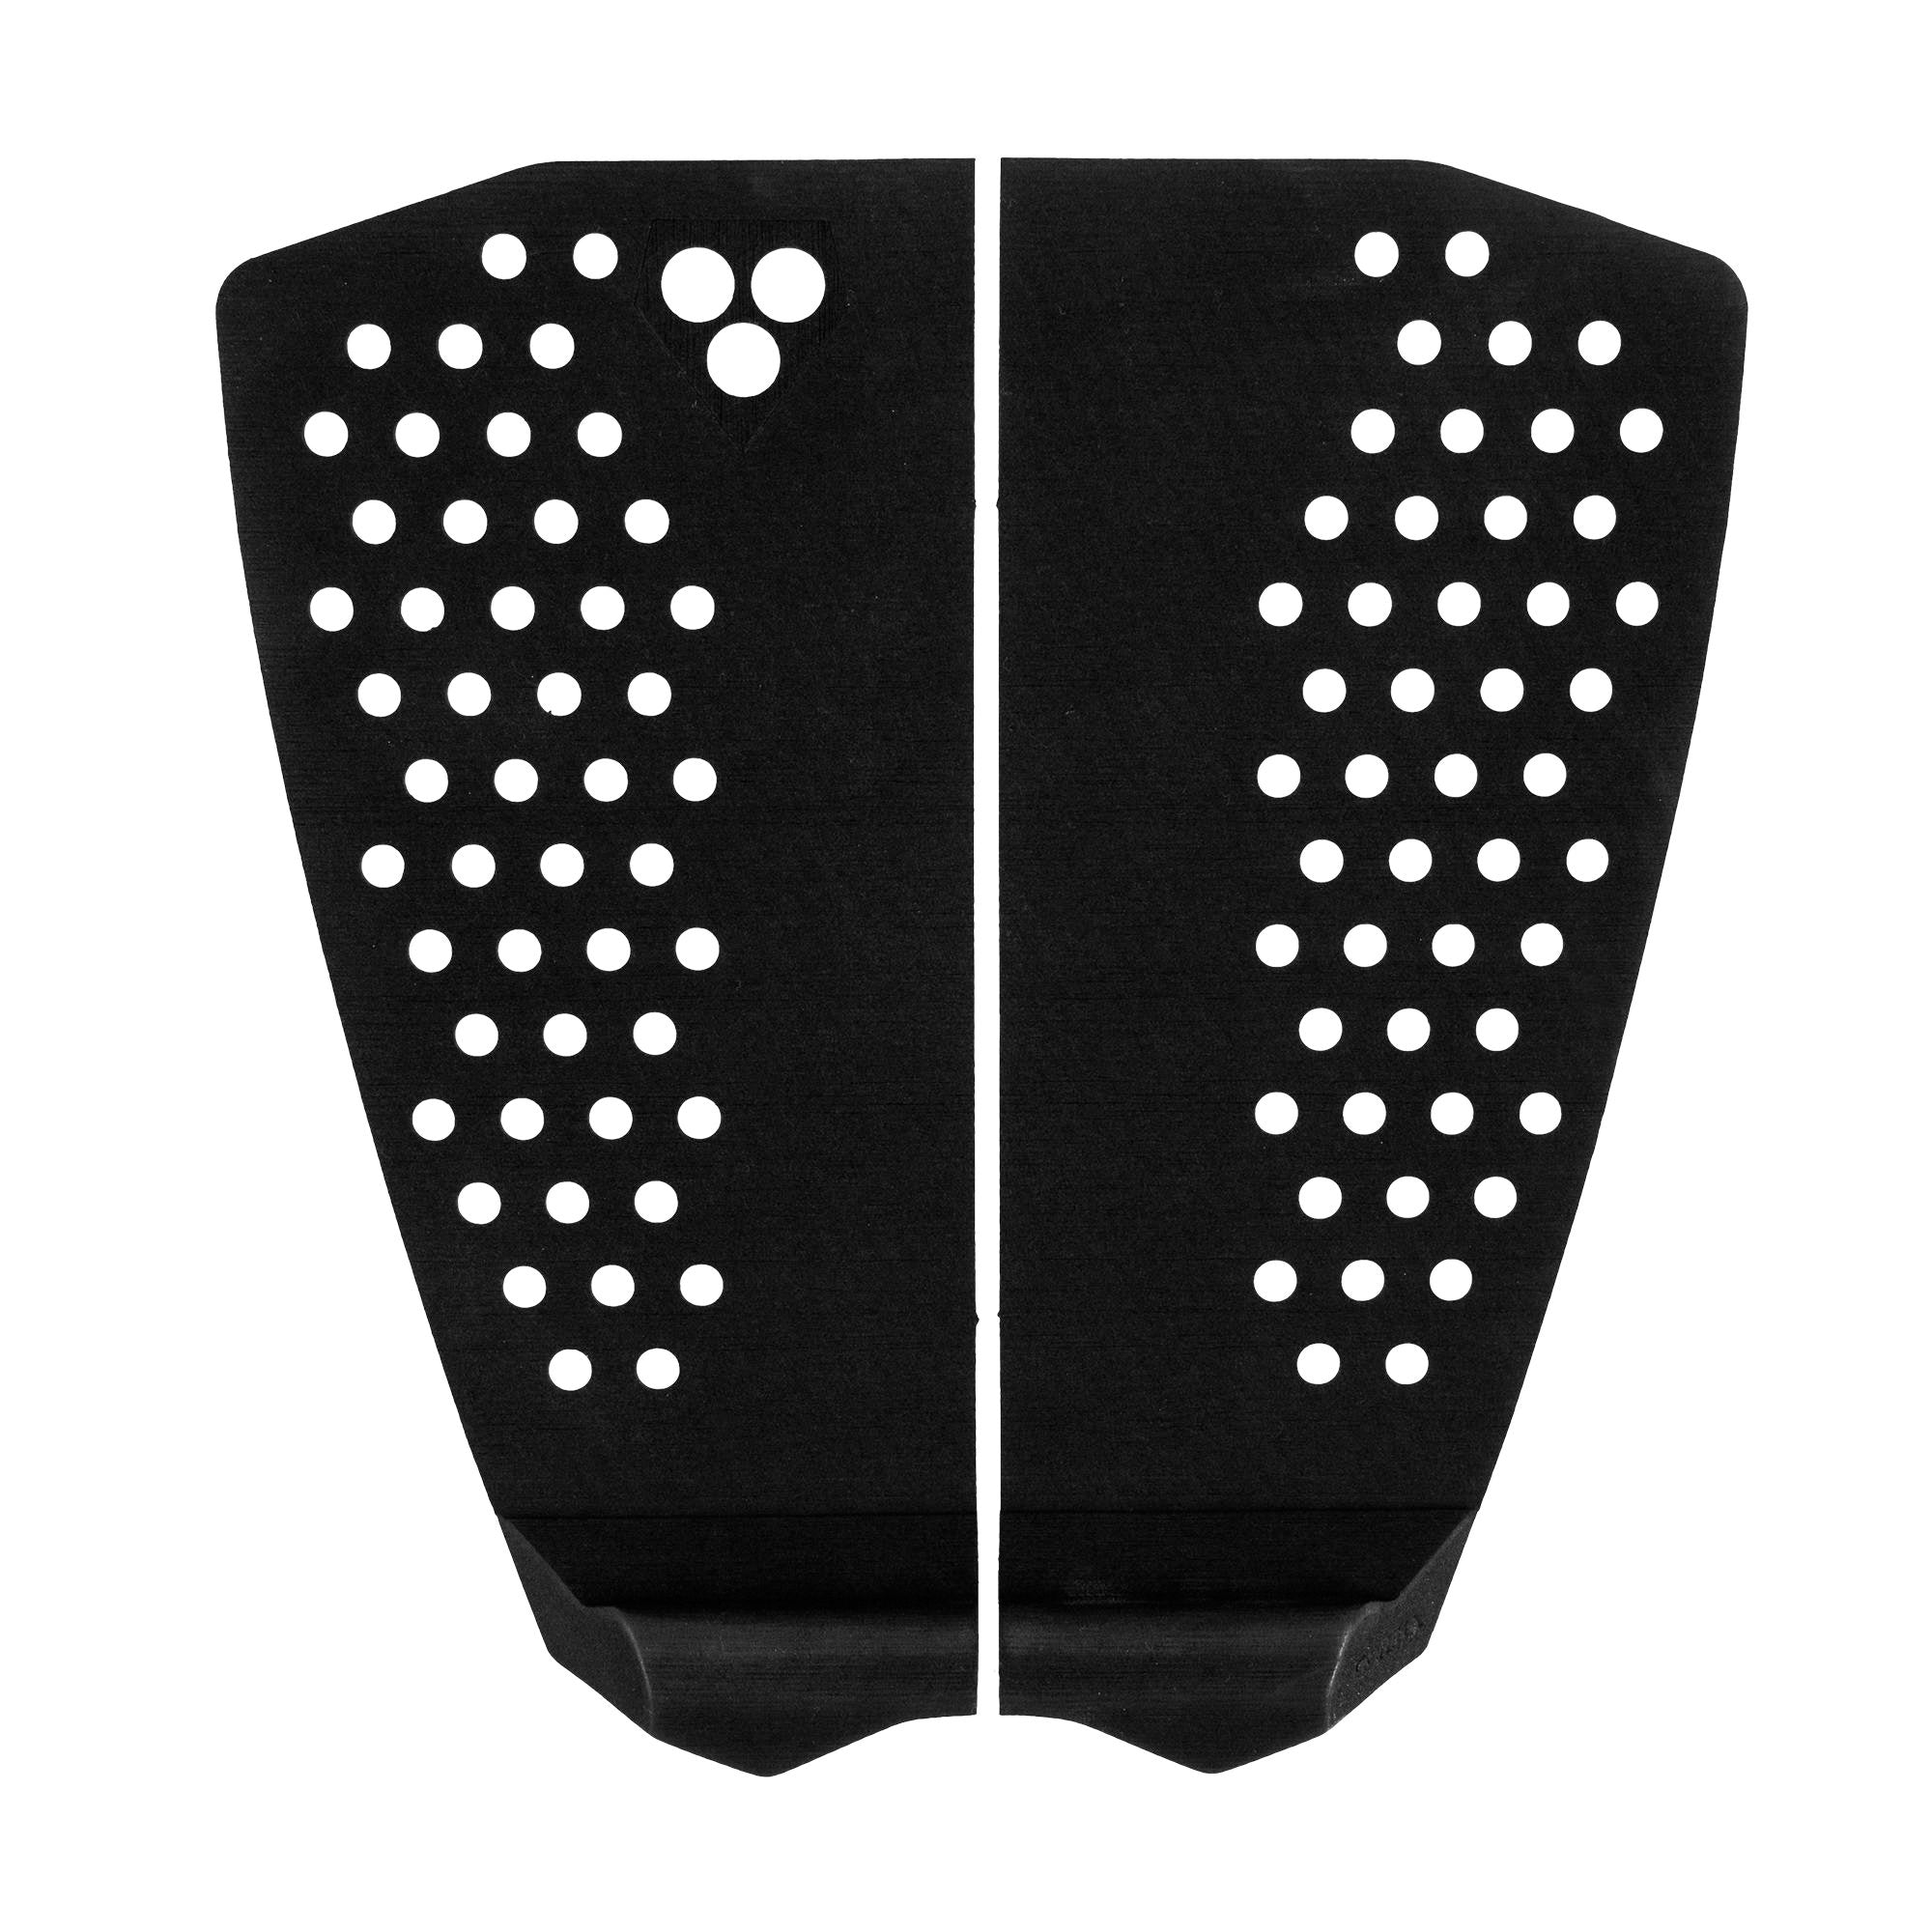 Gorilla Grip Skinny Two Piece Flat Traction Pad